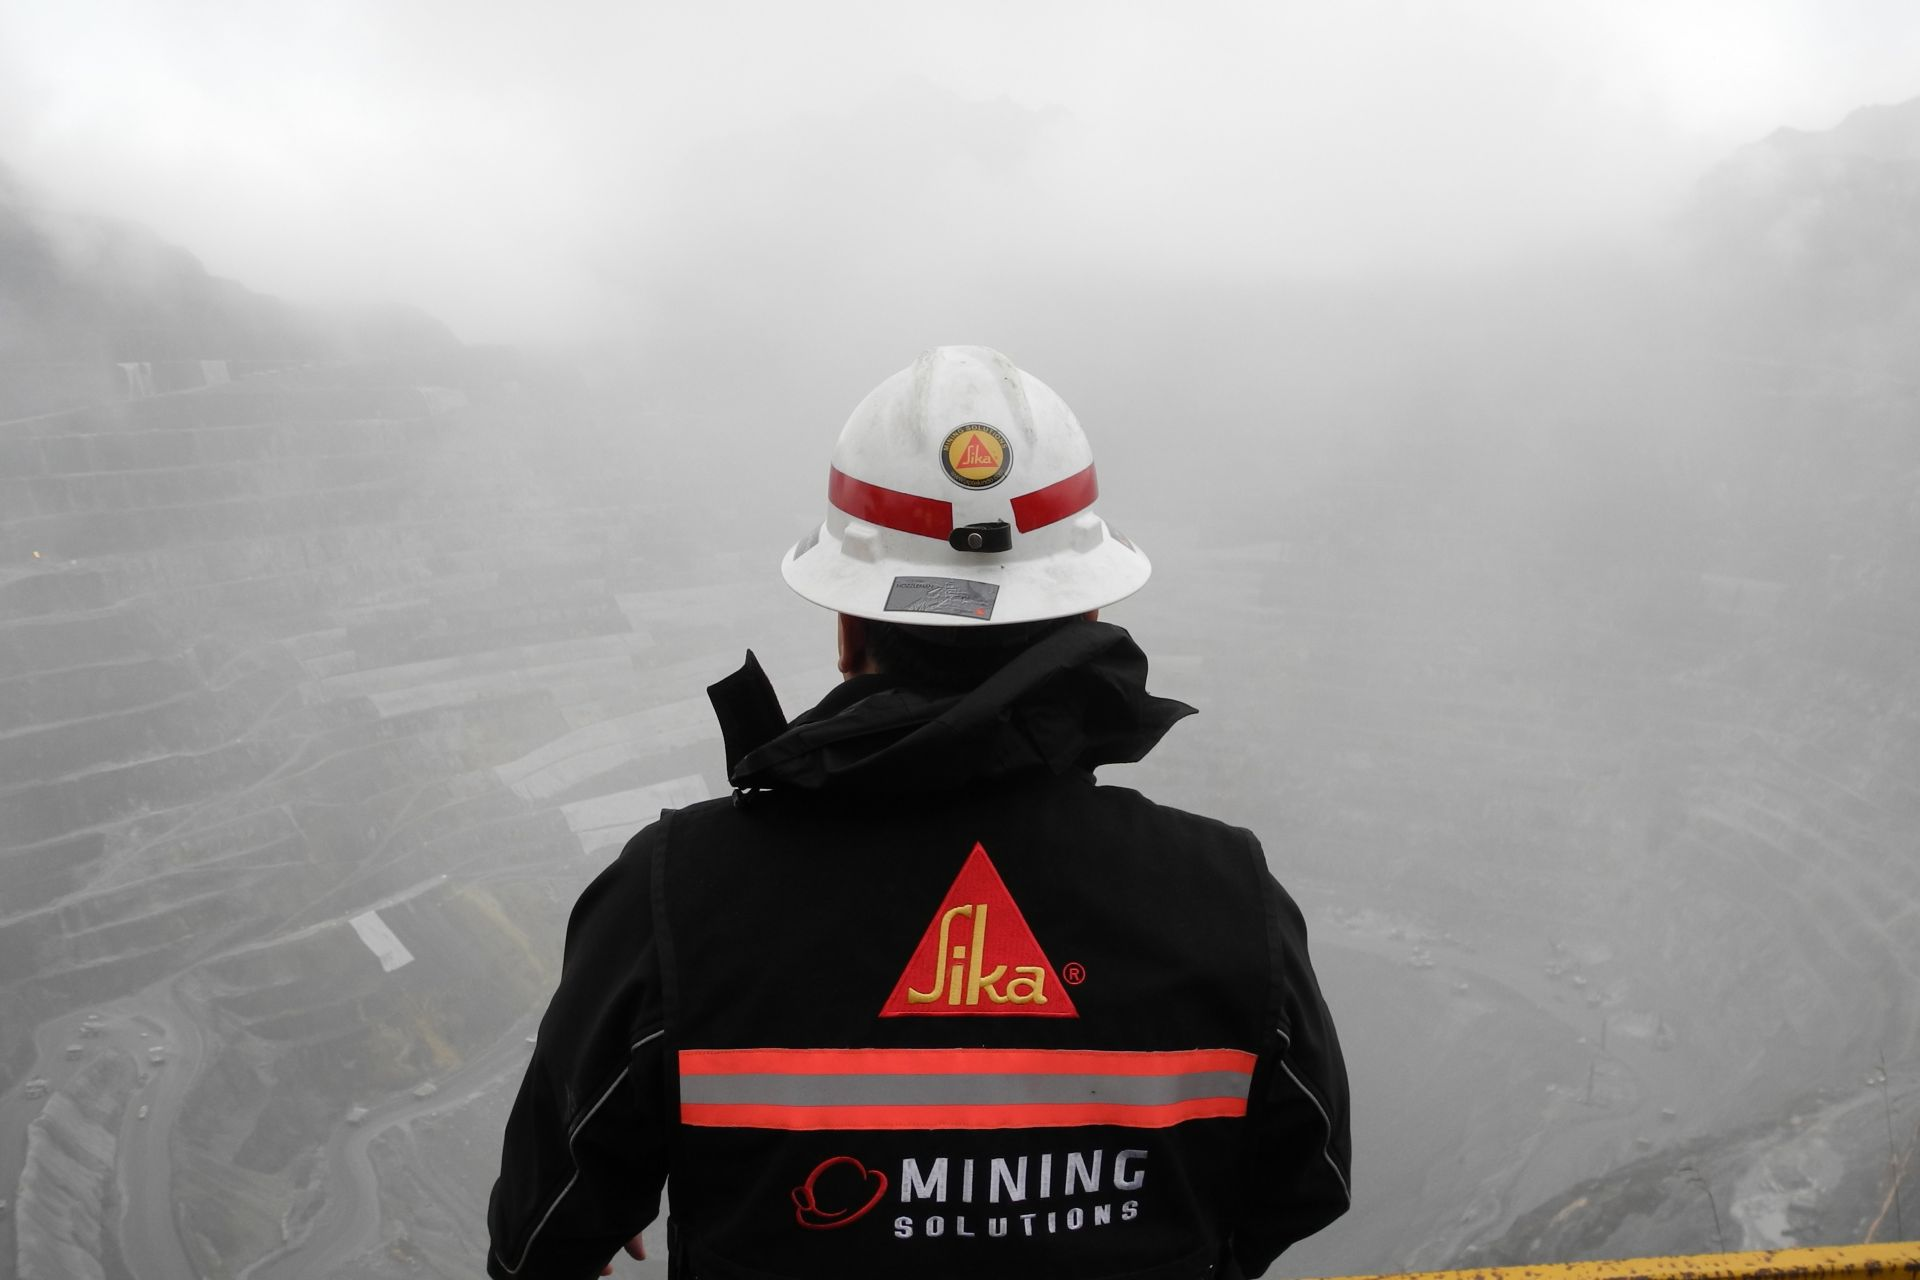 Sika worker looking at the Grasberg Copper-Gold Mine